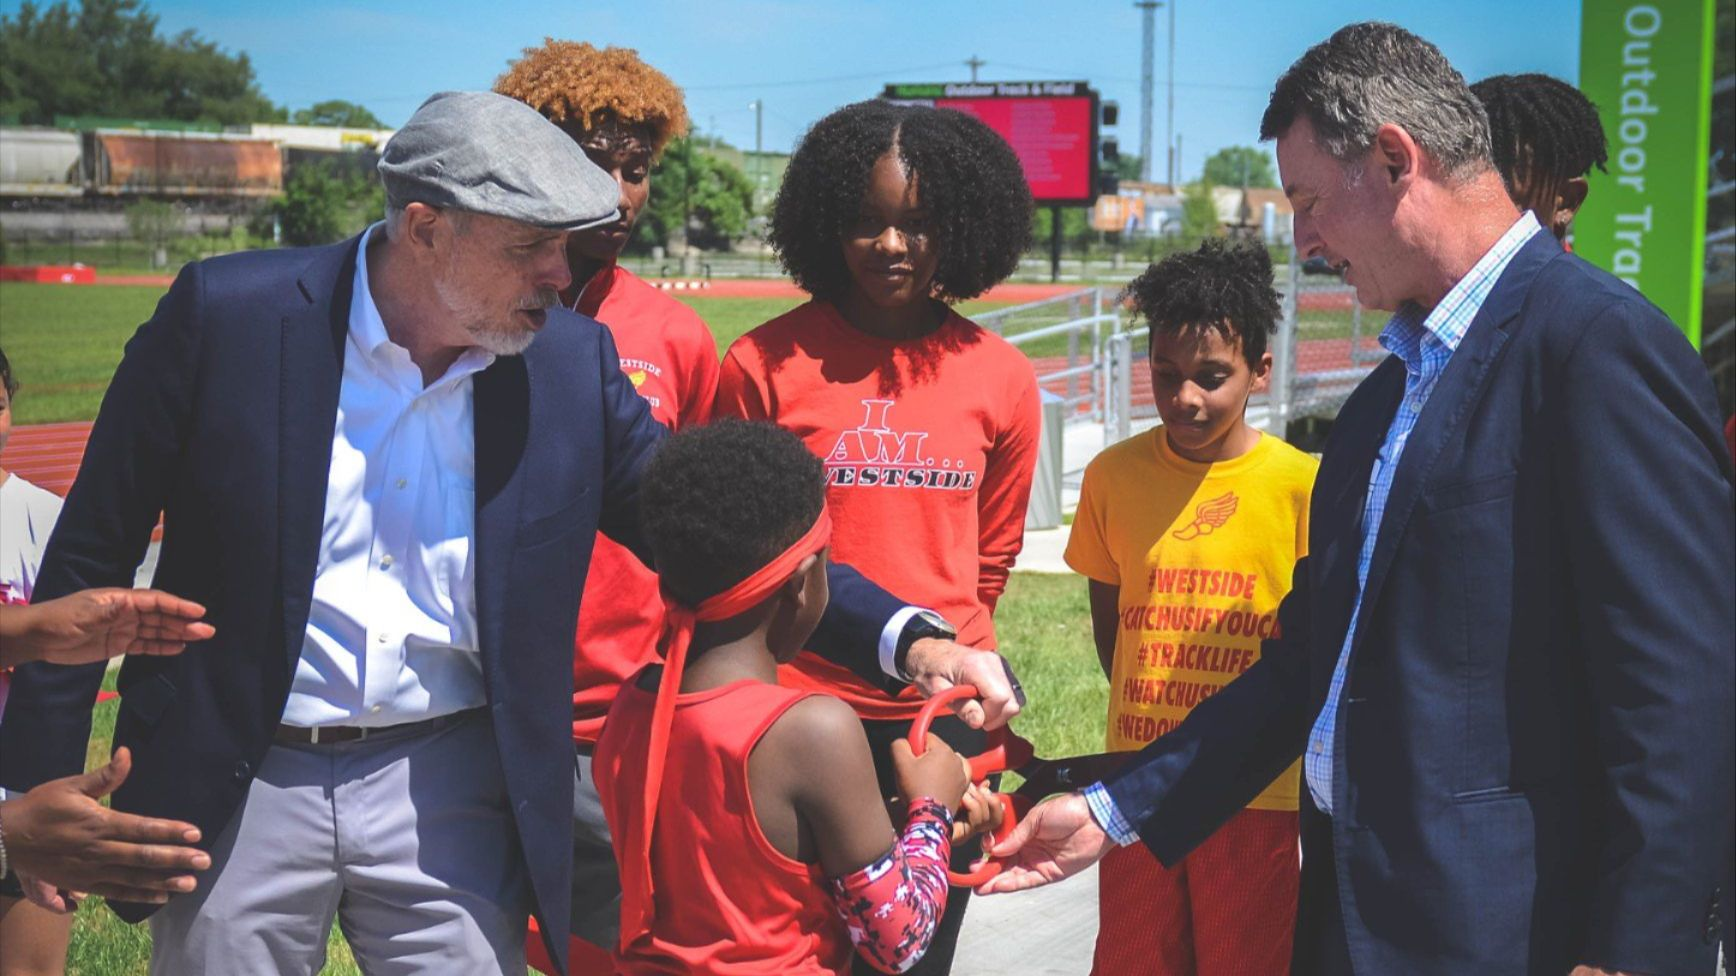 Humana Outdoor Track & Field Opens with Ribbon Cutting